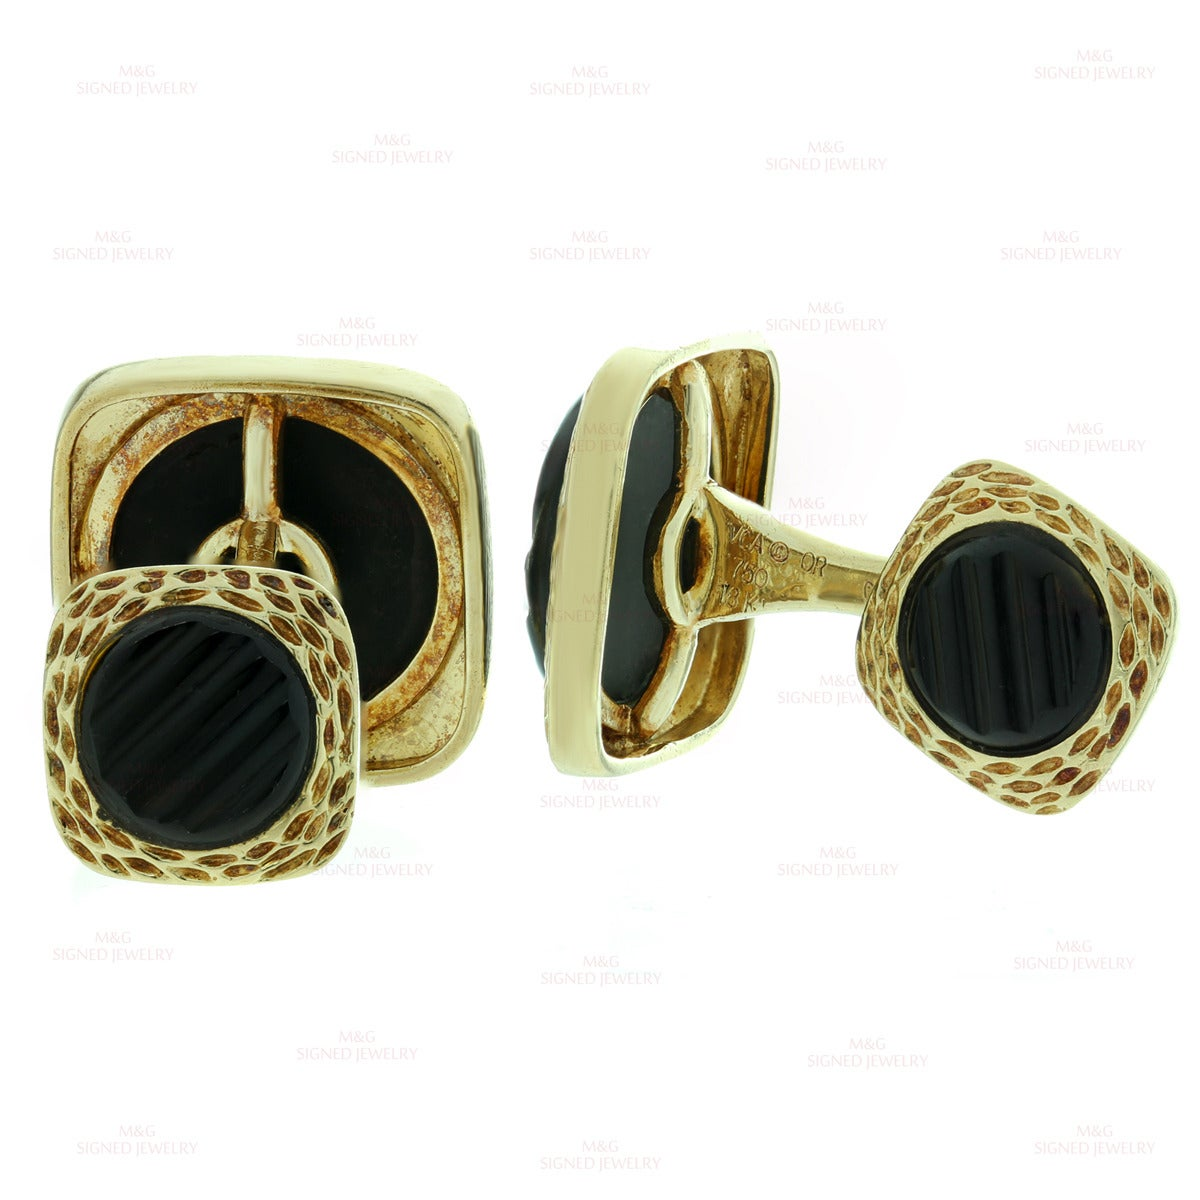 1970s Van Cleef & Arpels Black Onyx Gold Cufflinks In Good Condition For Sale In New York, NY